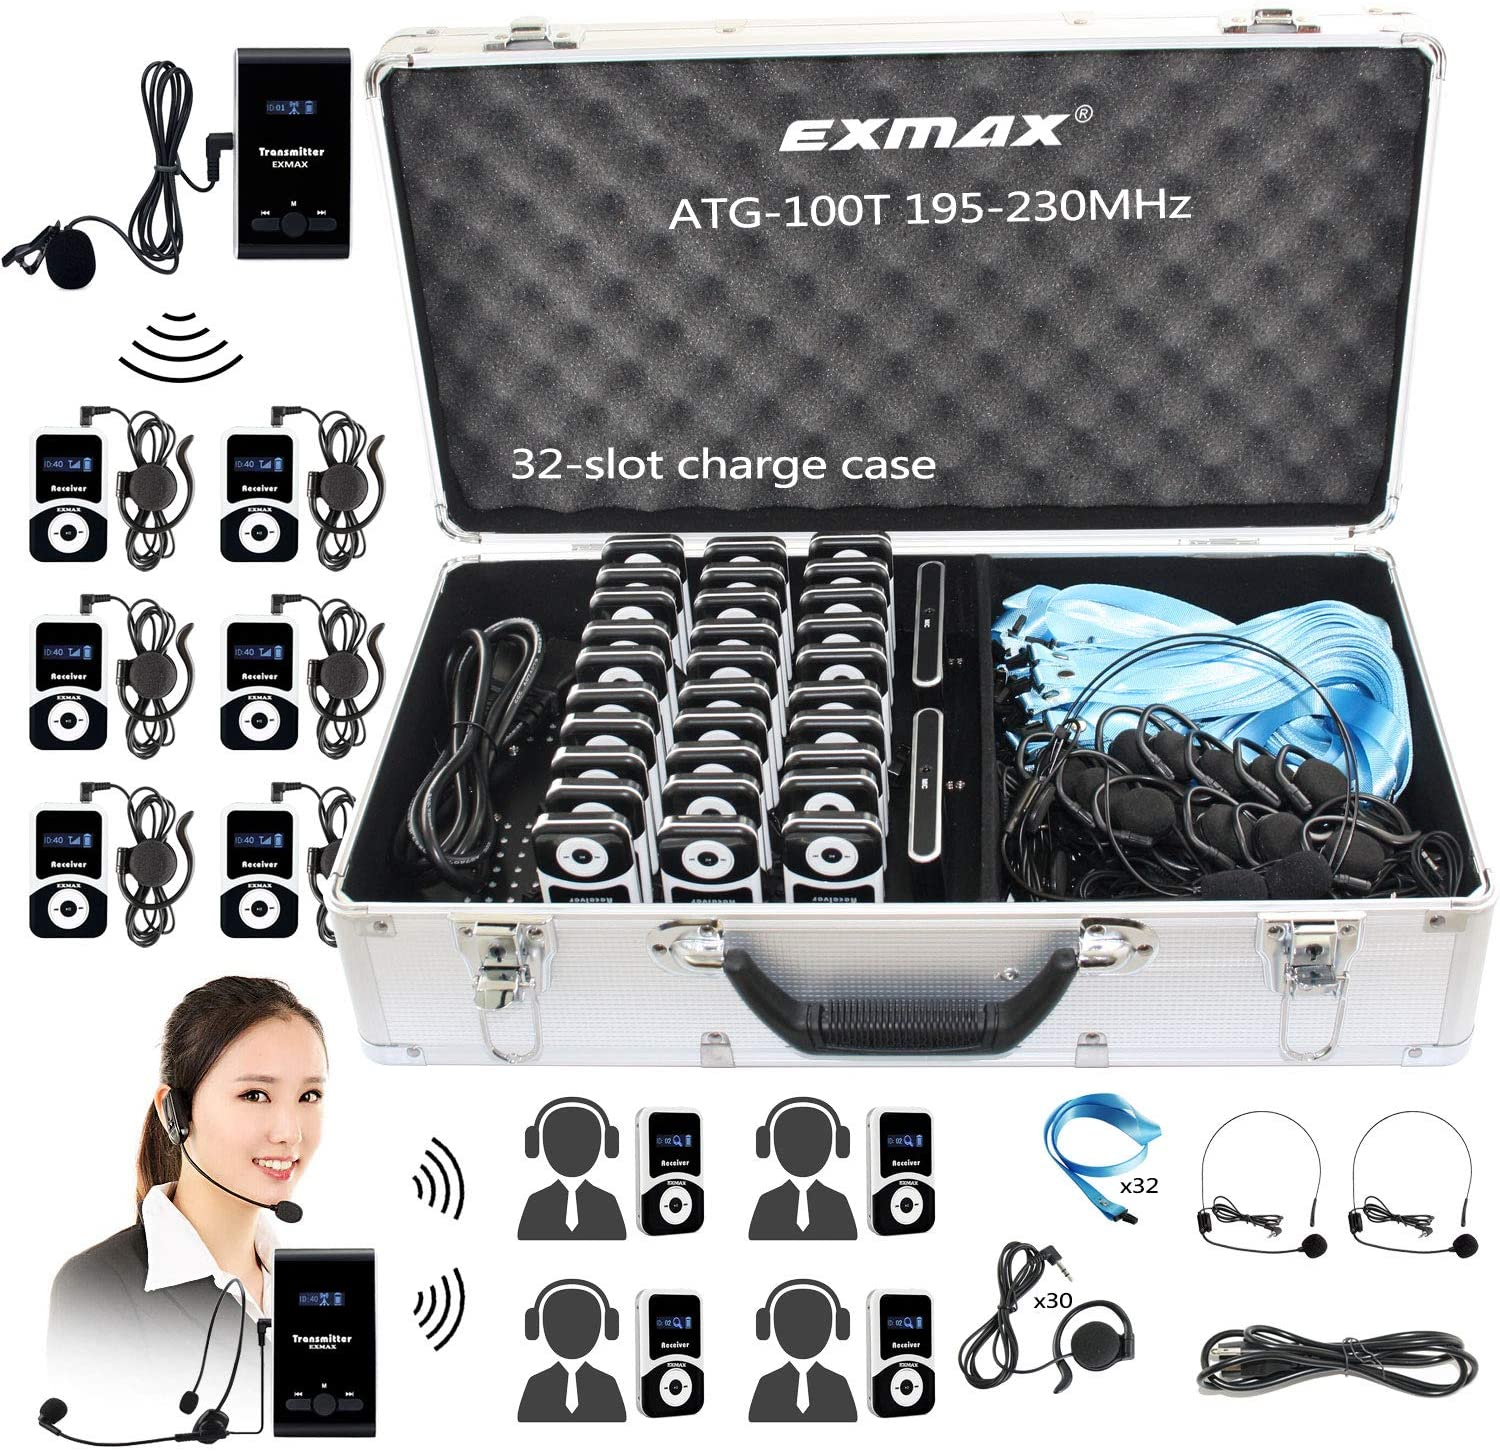 EXMAX ATG-100T 195-230MHz Wireless Tour Guide Monitoring Voice Audio Transmission System + Aluminium Alloy Charge Case for Teaching Tour Guides Conference Church Trip(2 Transmitters and 30 Receivers)